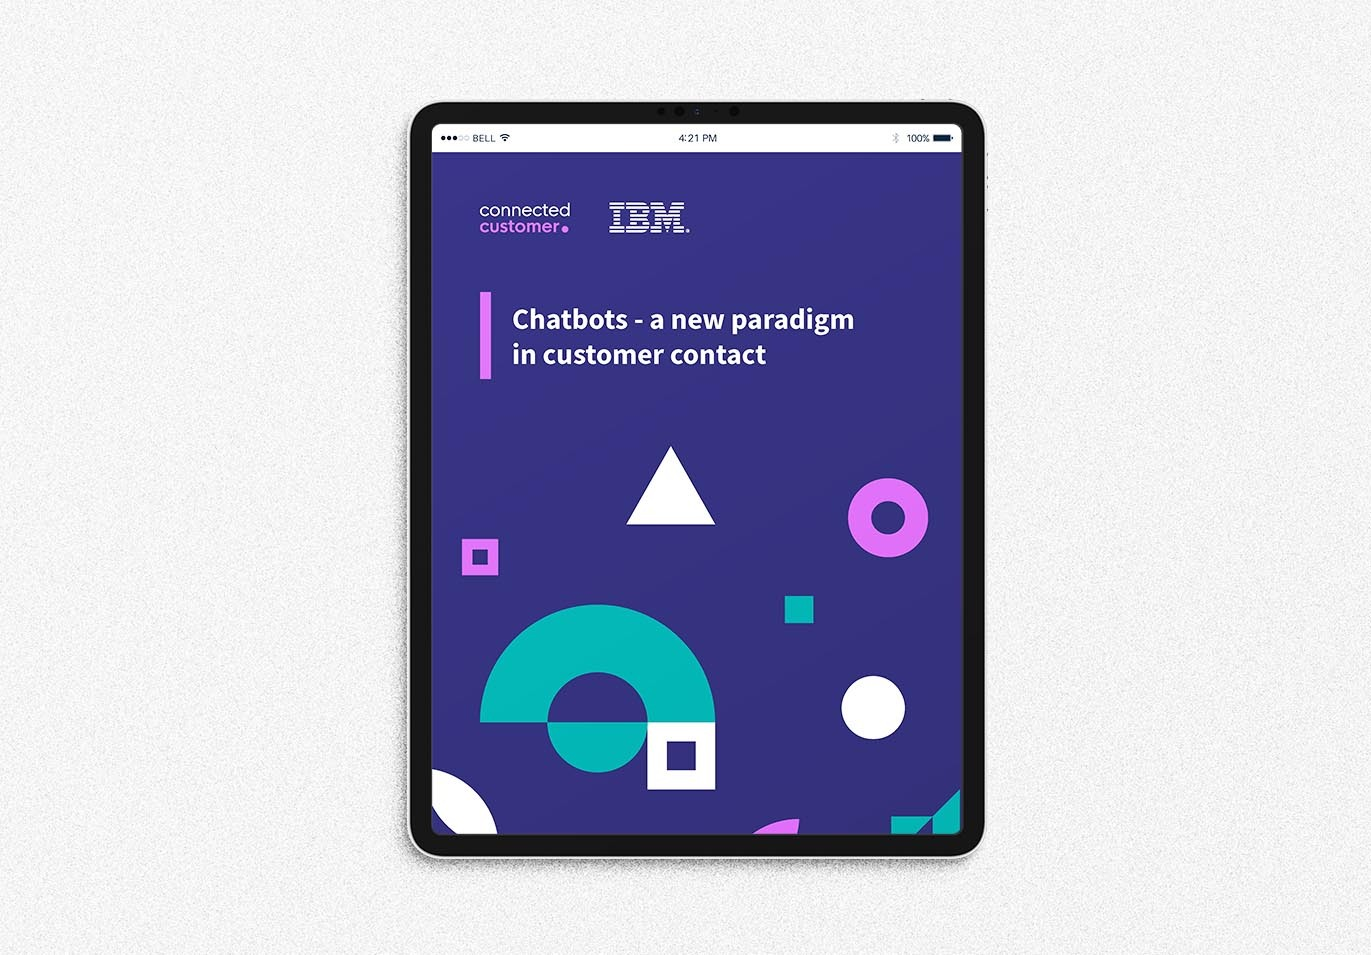 Chatbots - a new paradigm in customer contact | Connected Customer Digital Campaign